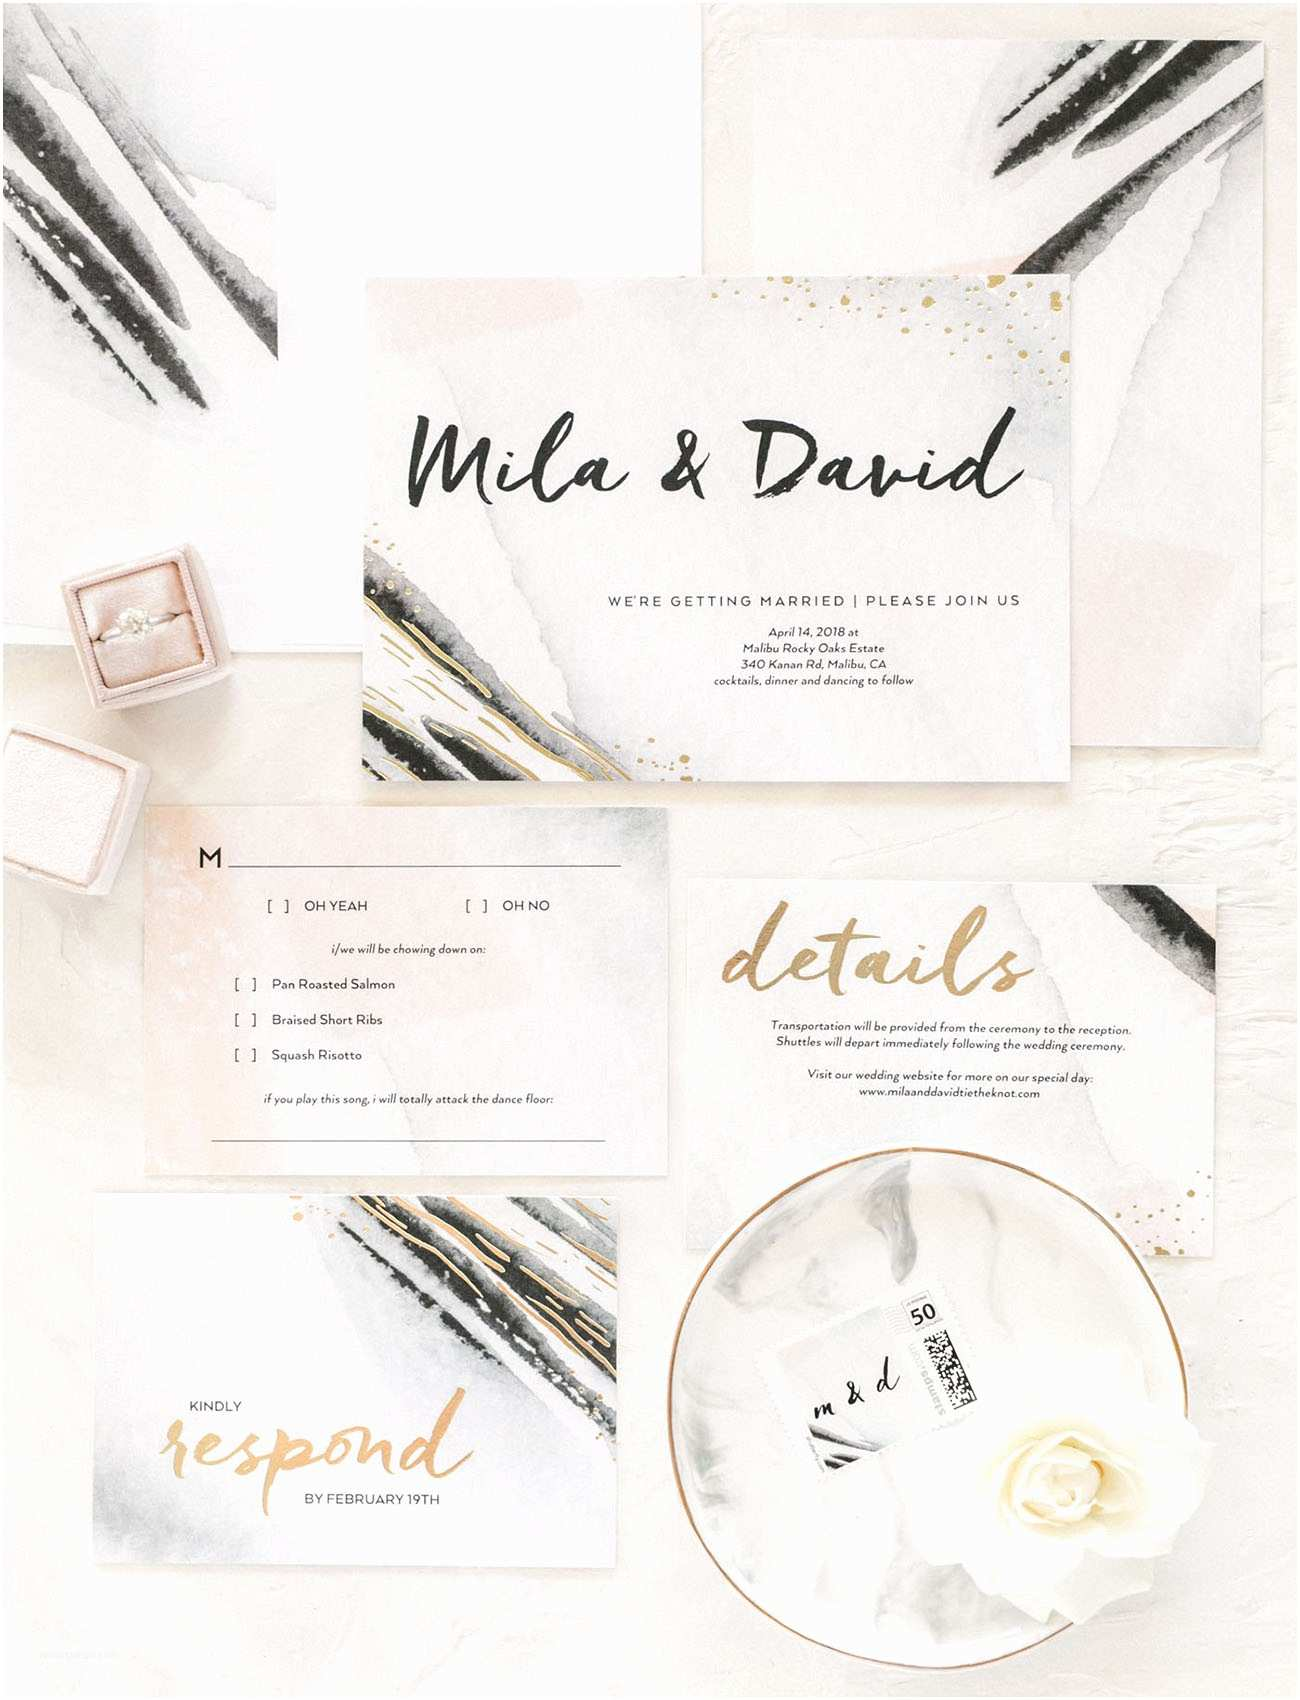 Shutterfly Wedding Invitations Customize Your Wedding Invitations with the Wedding Shop